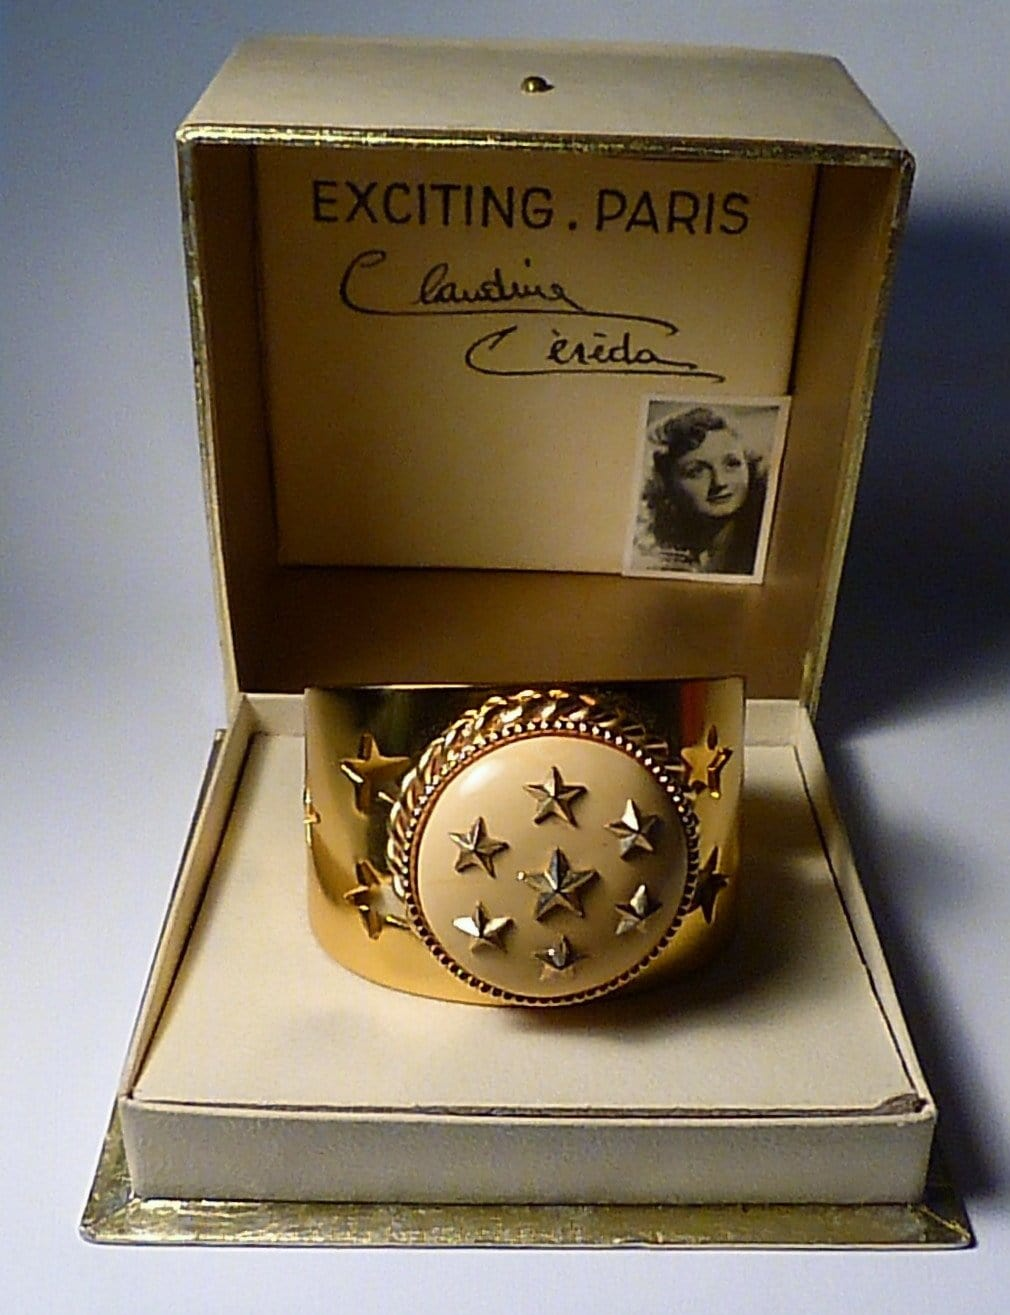 Extremely rare bracelet compact Albert FLAMAND Claudine Cereda  EXCITING PARIS promotional compact  Claudine Céréda